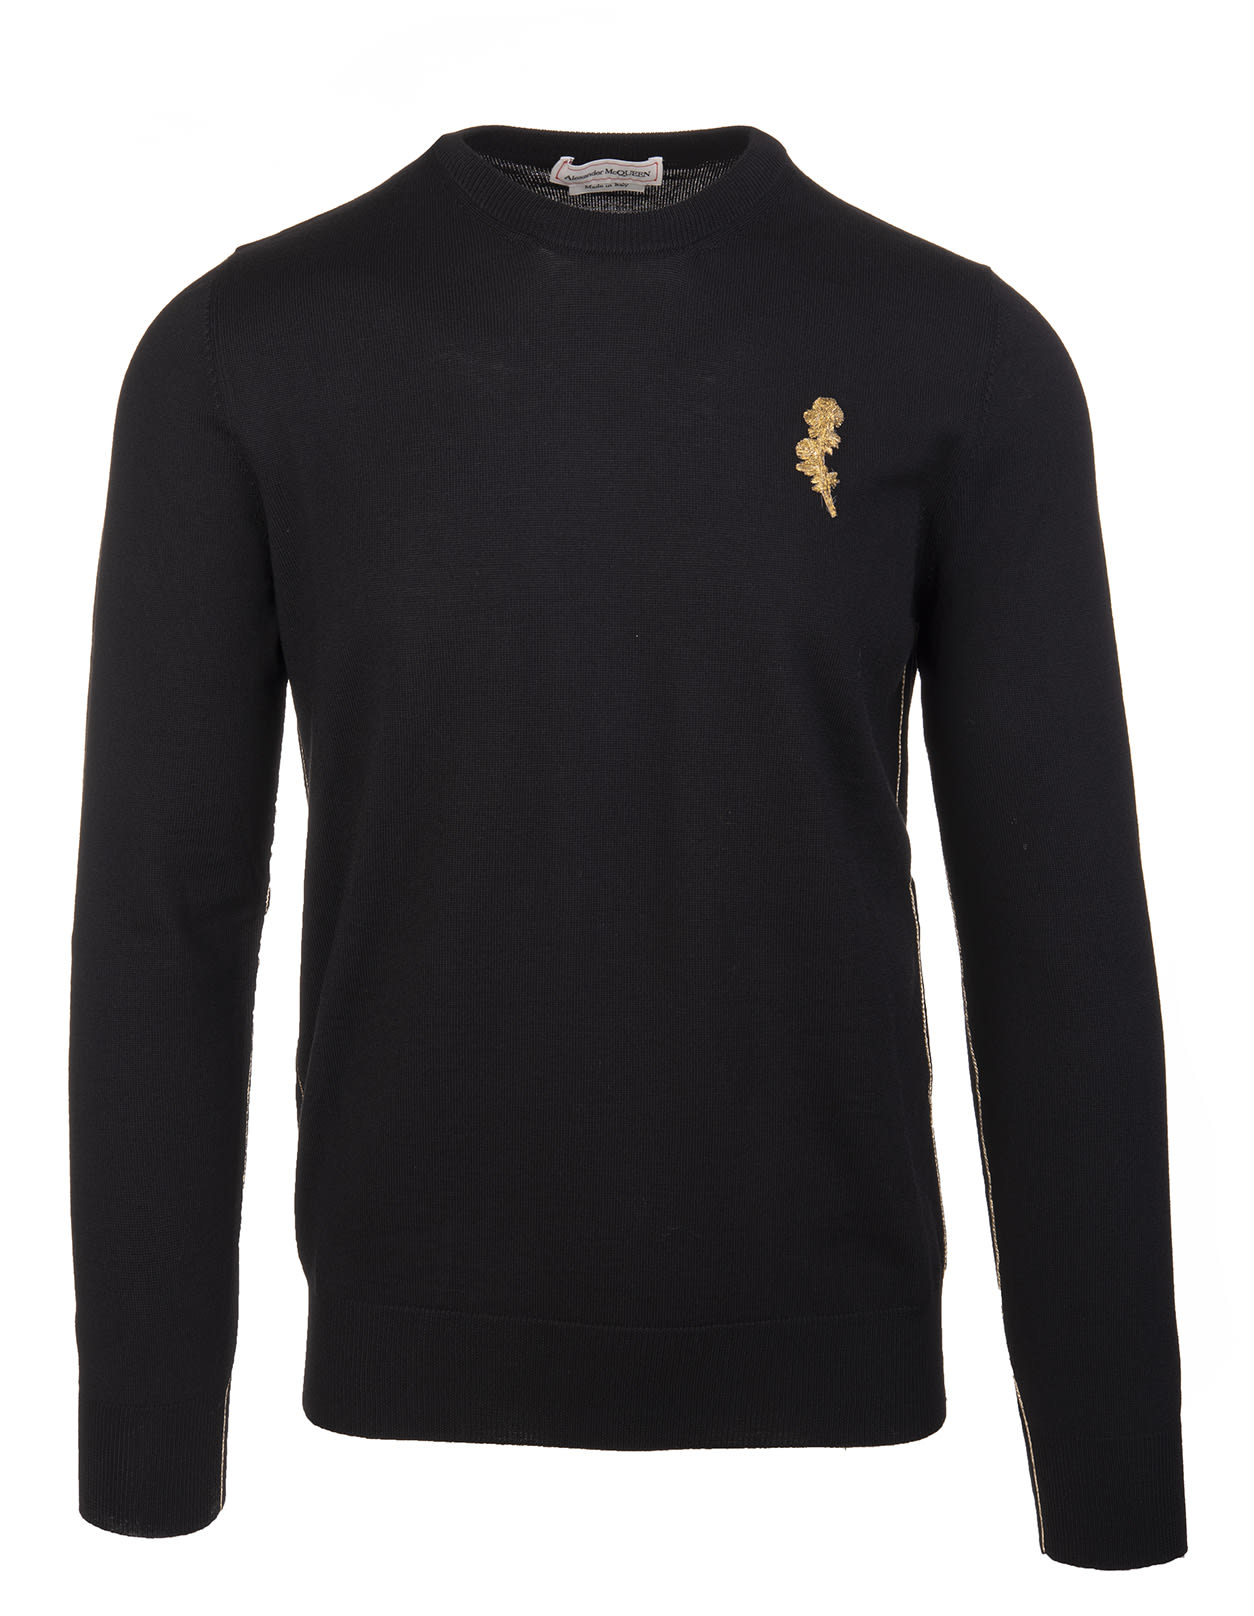 Alexander McQueen Man Black Sweater With Gold Thistle Embroidery